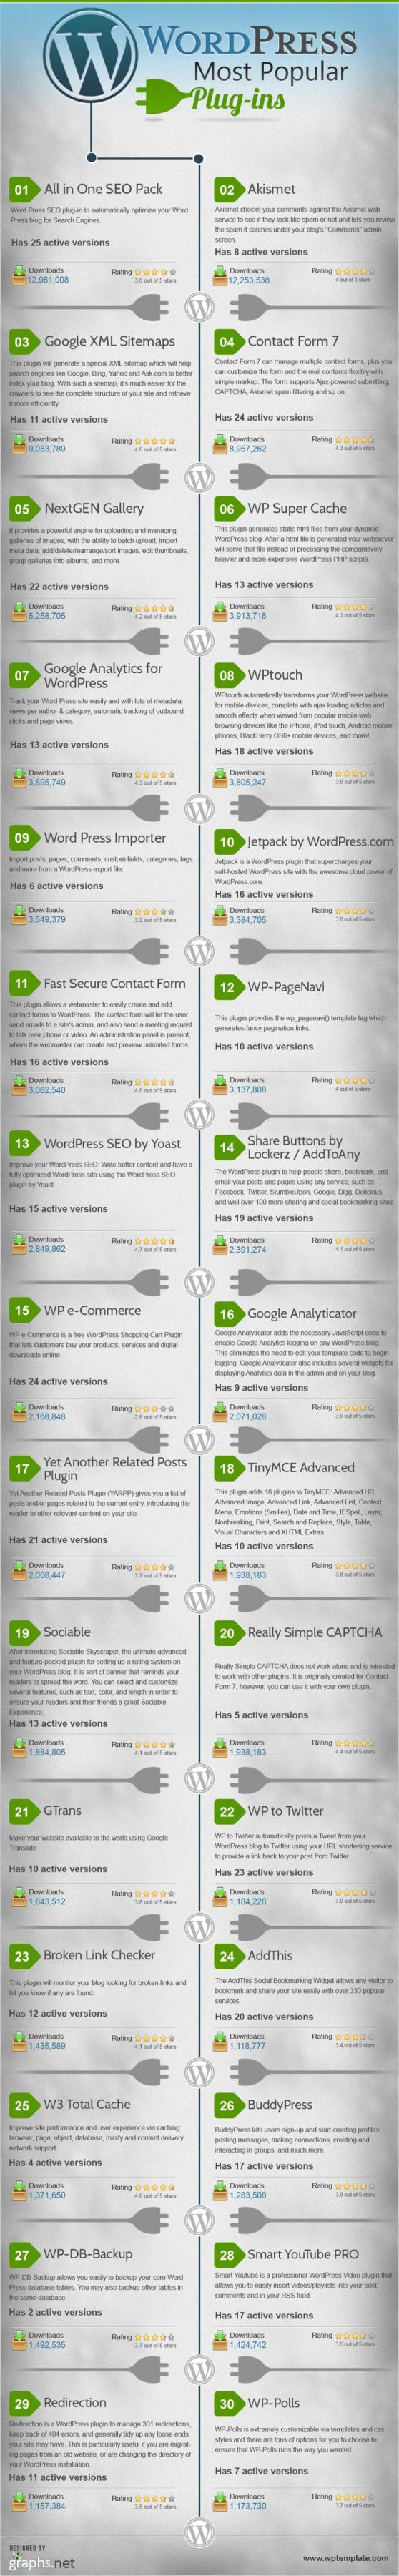 WordPress-Popular-Plugins-Infographic